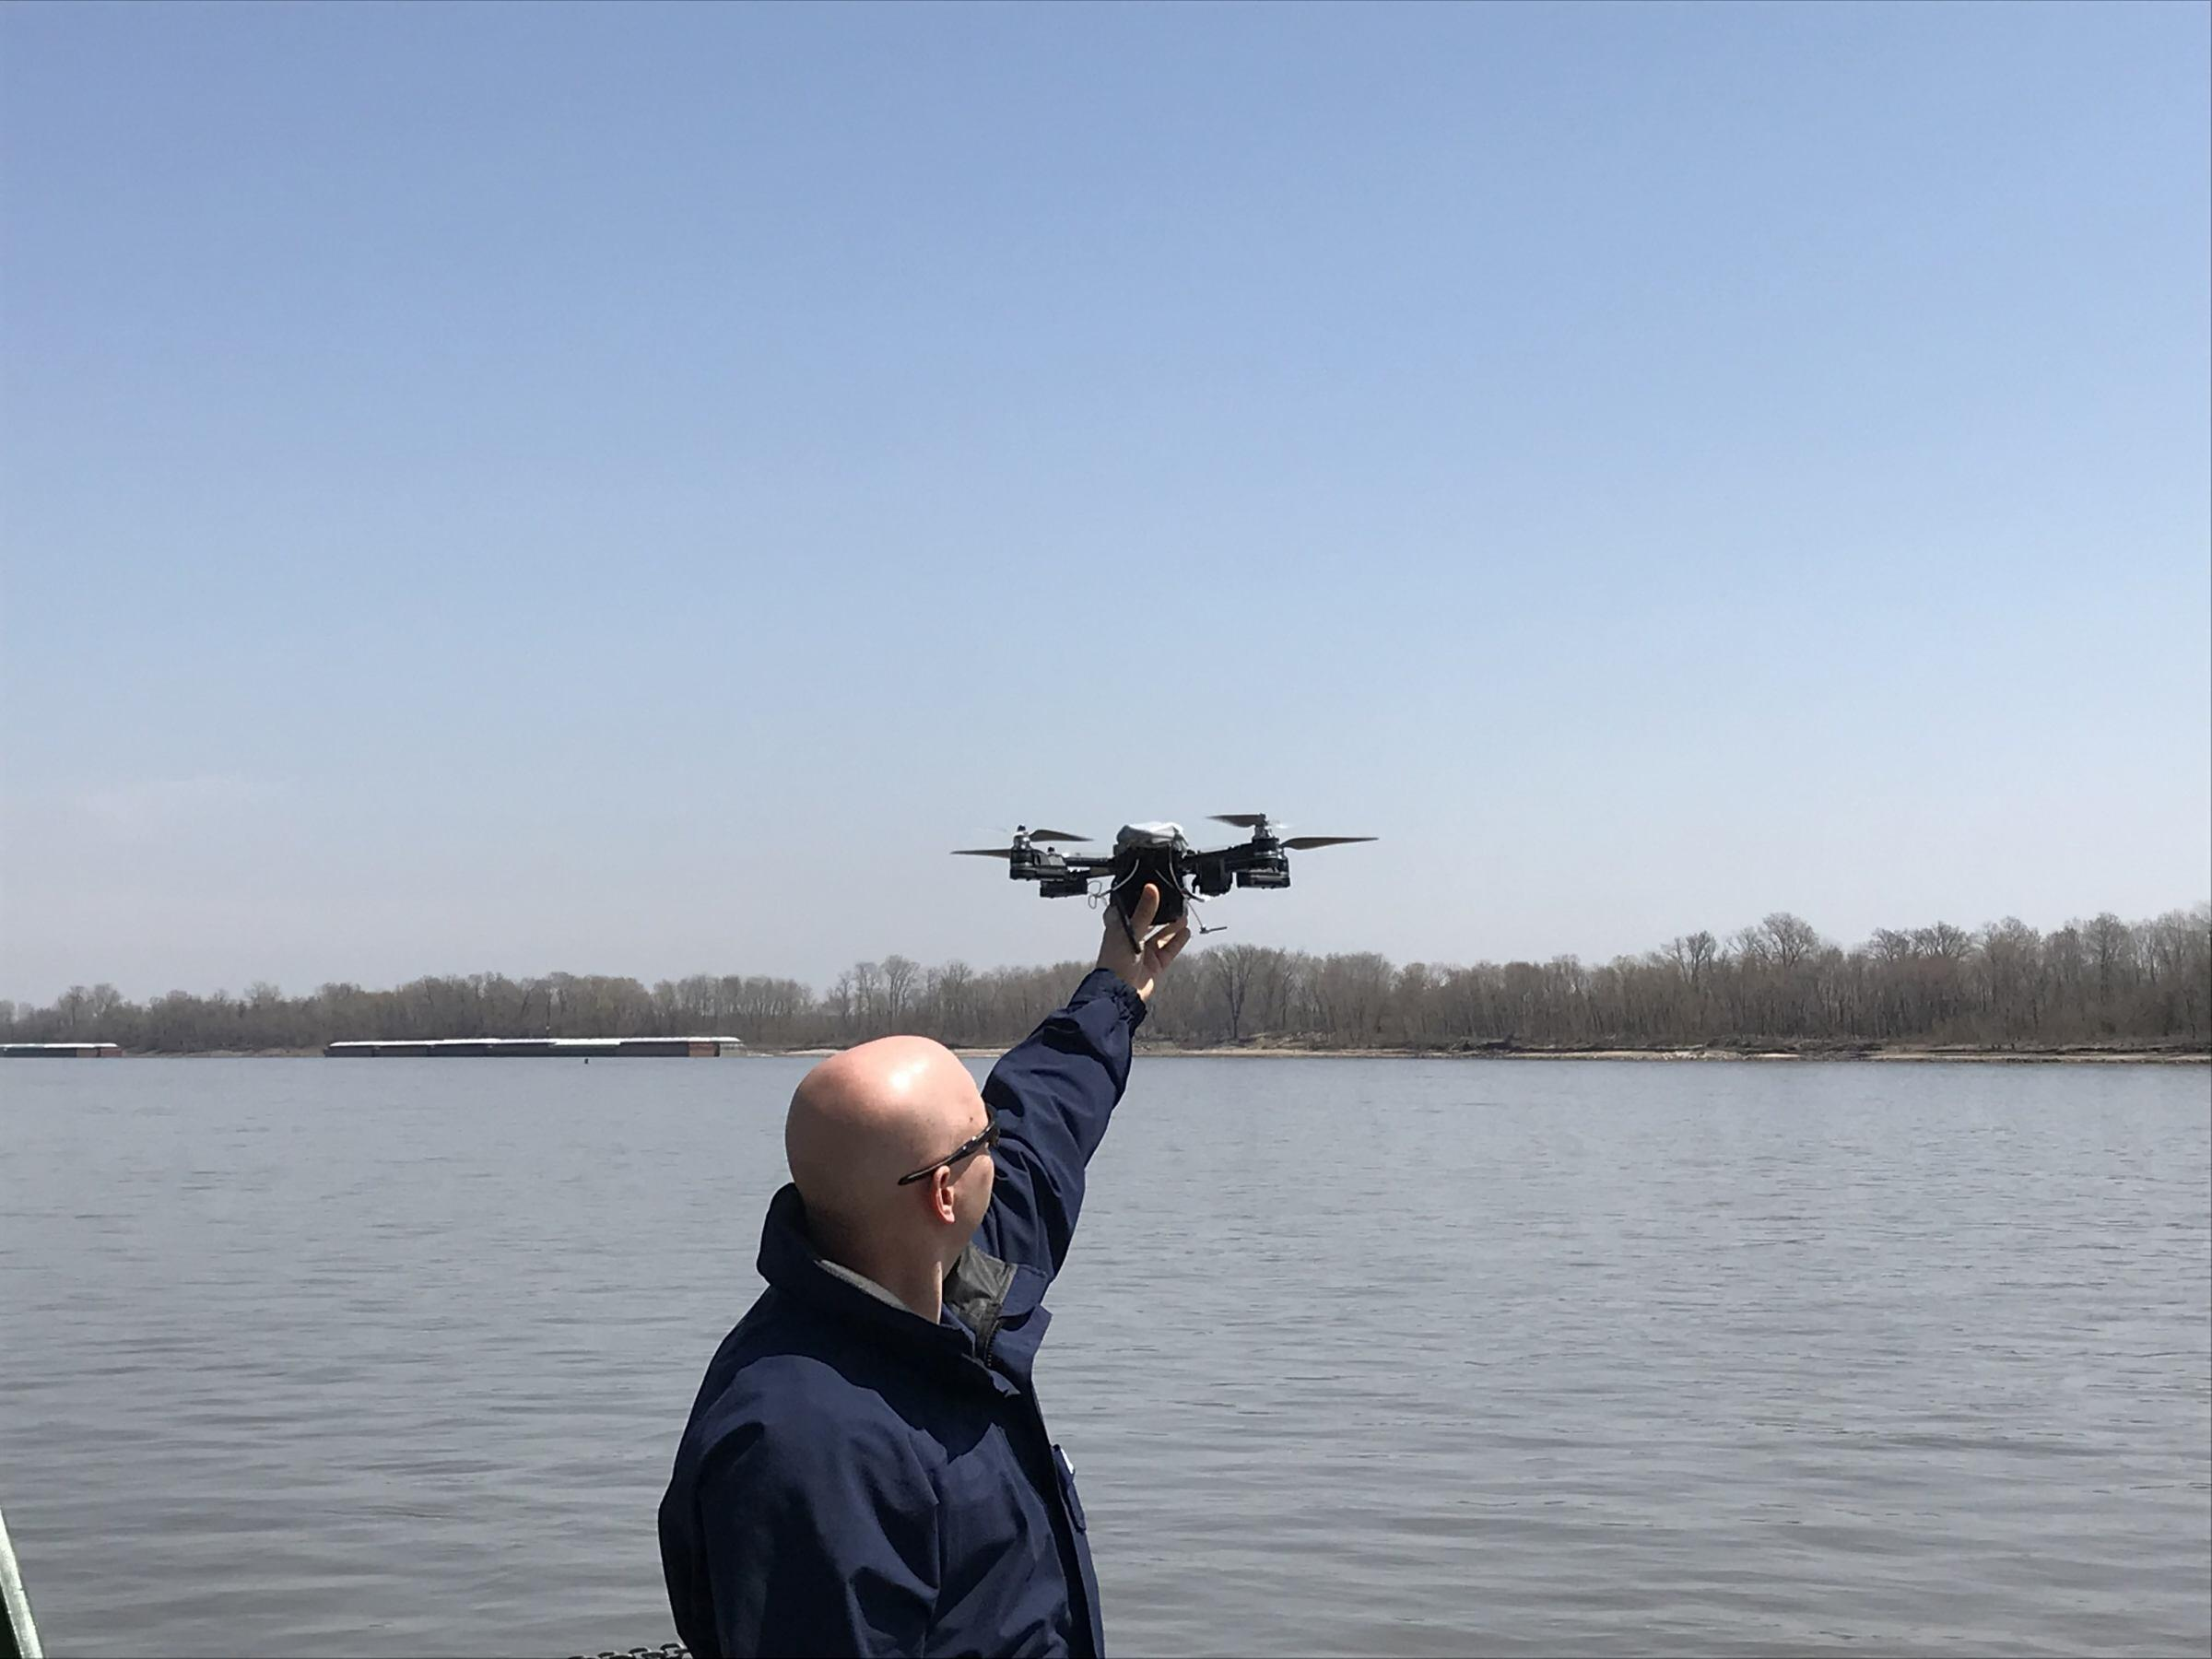 RASP participant sets his drone for takeoff in another RASP demonstration at Singing River Island